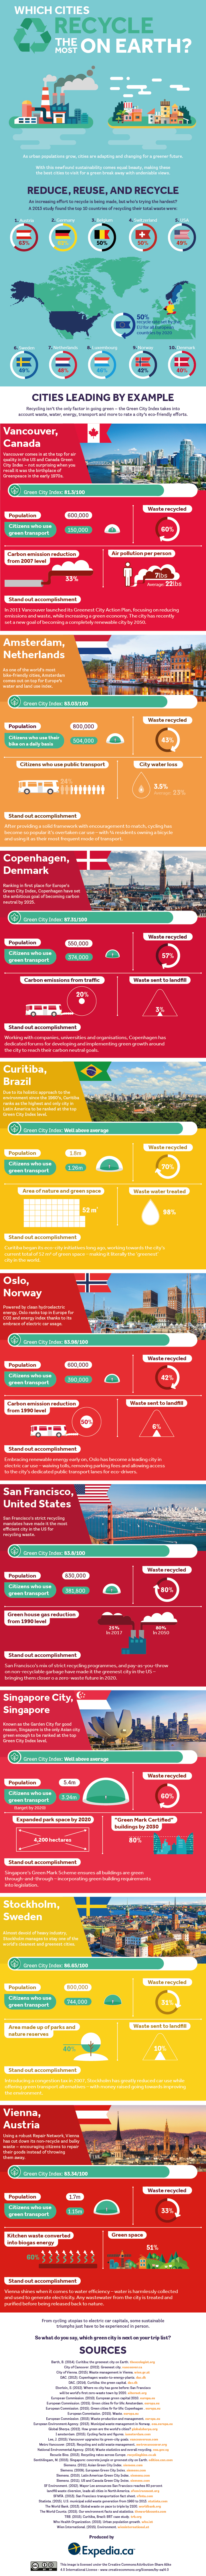 Which Cities Recycle The Most [Infographic]